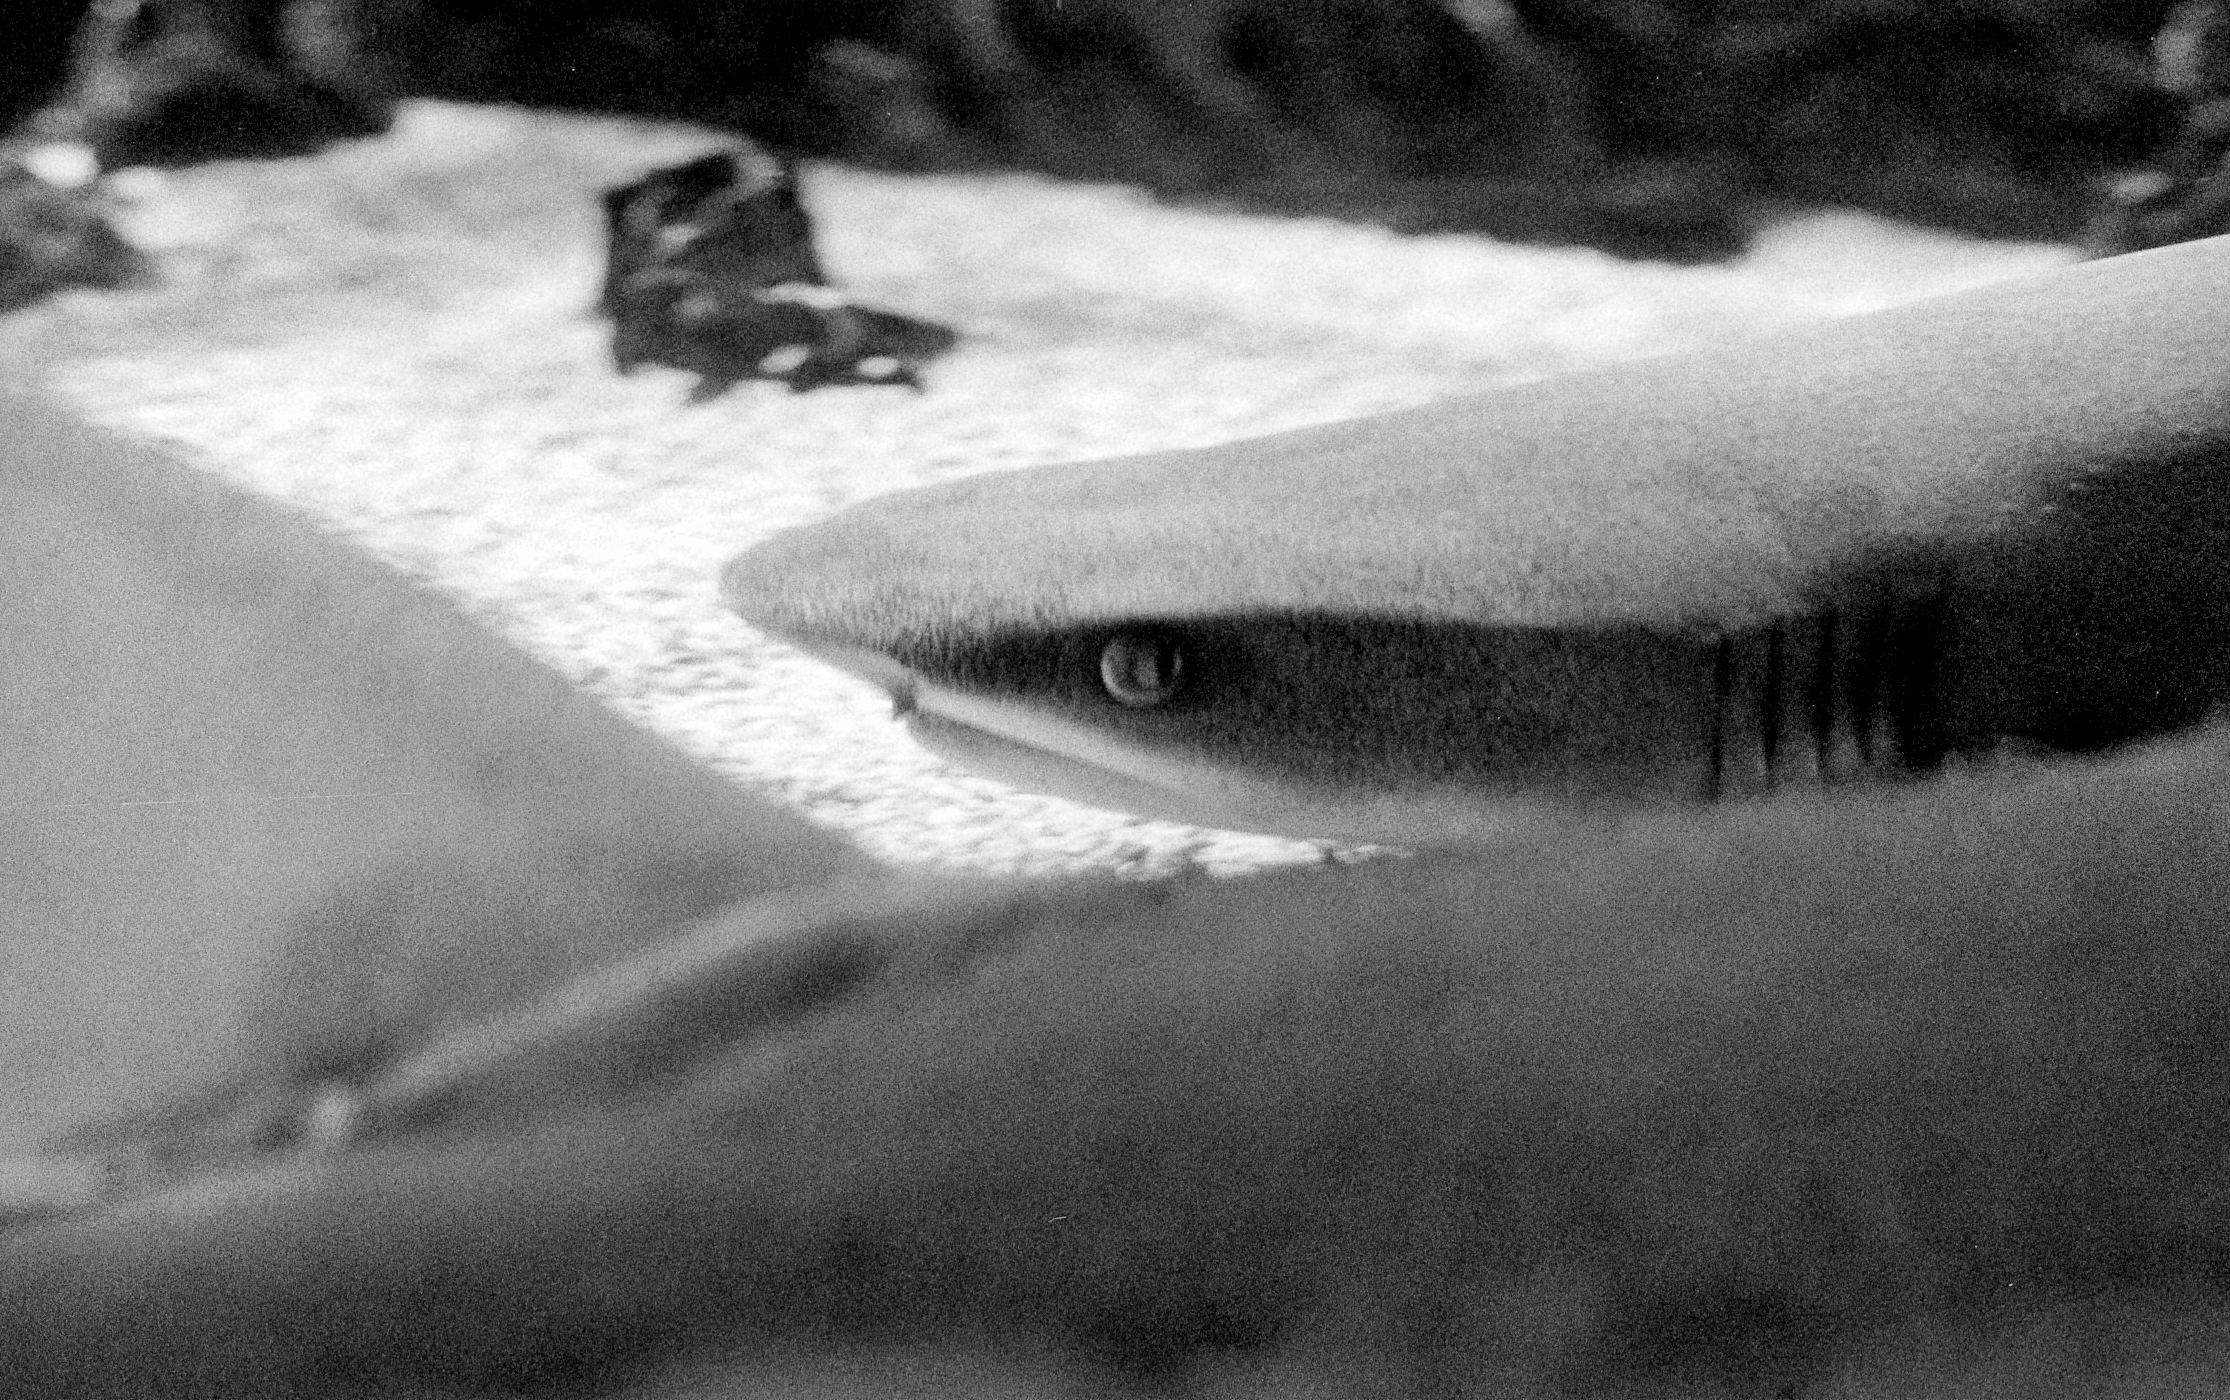 Sharks resting on bottom of tank (All pics: Stephen Dowling)